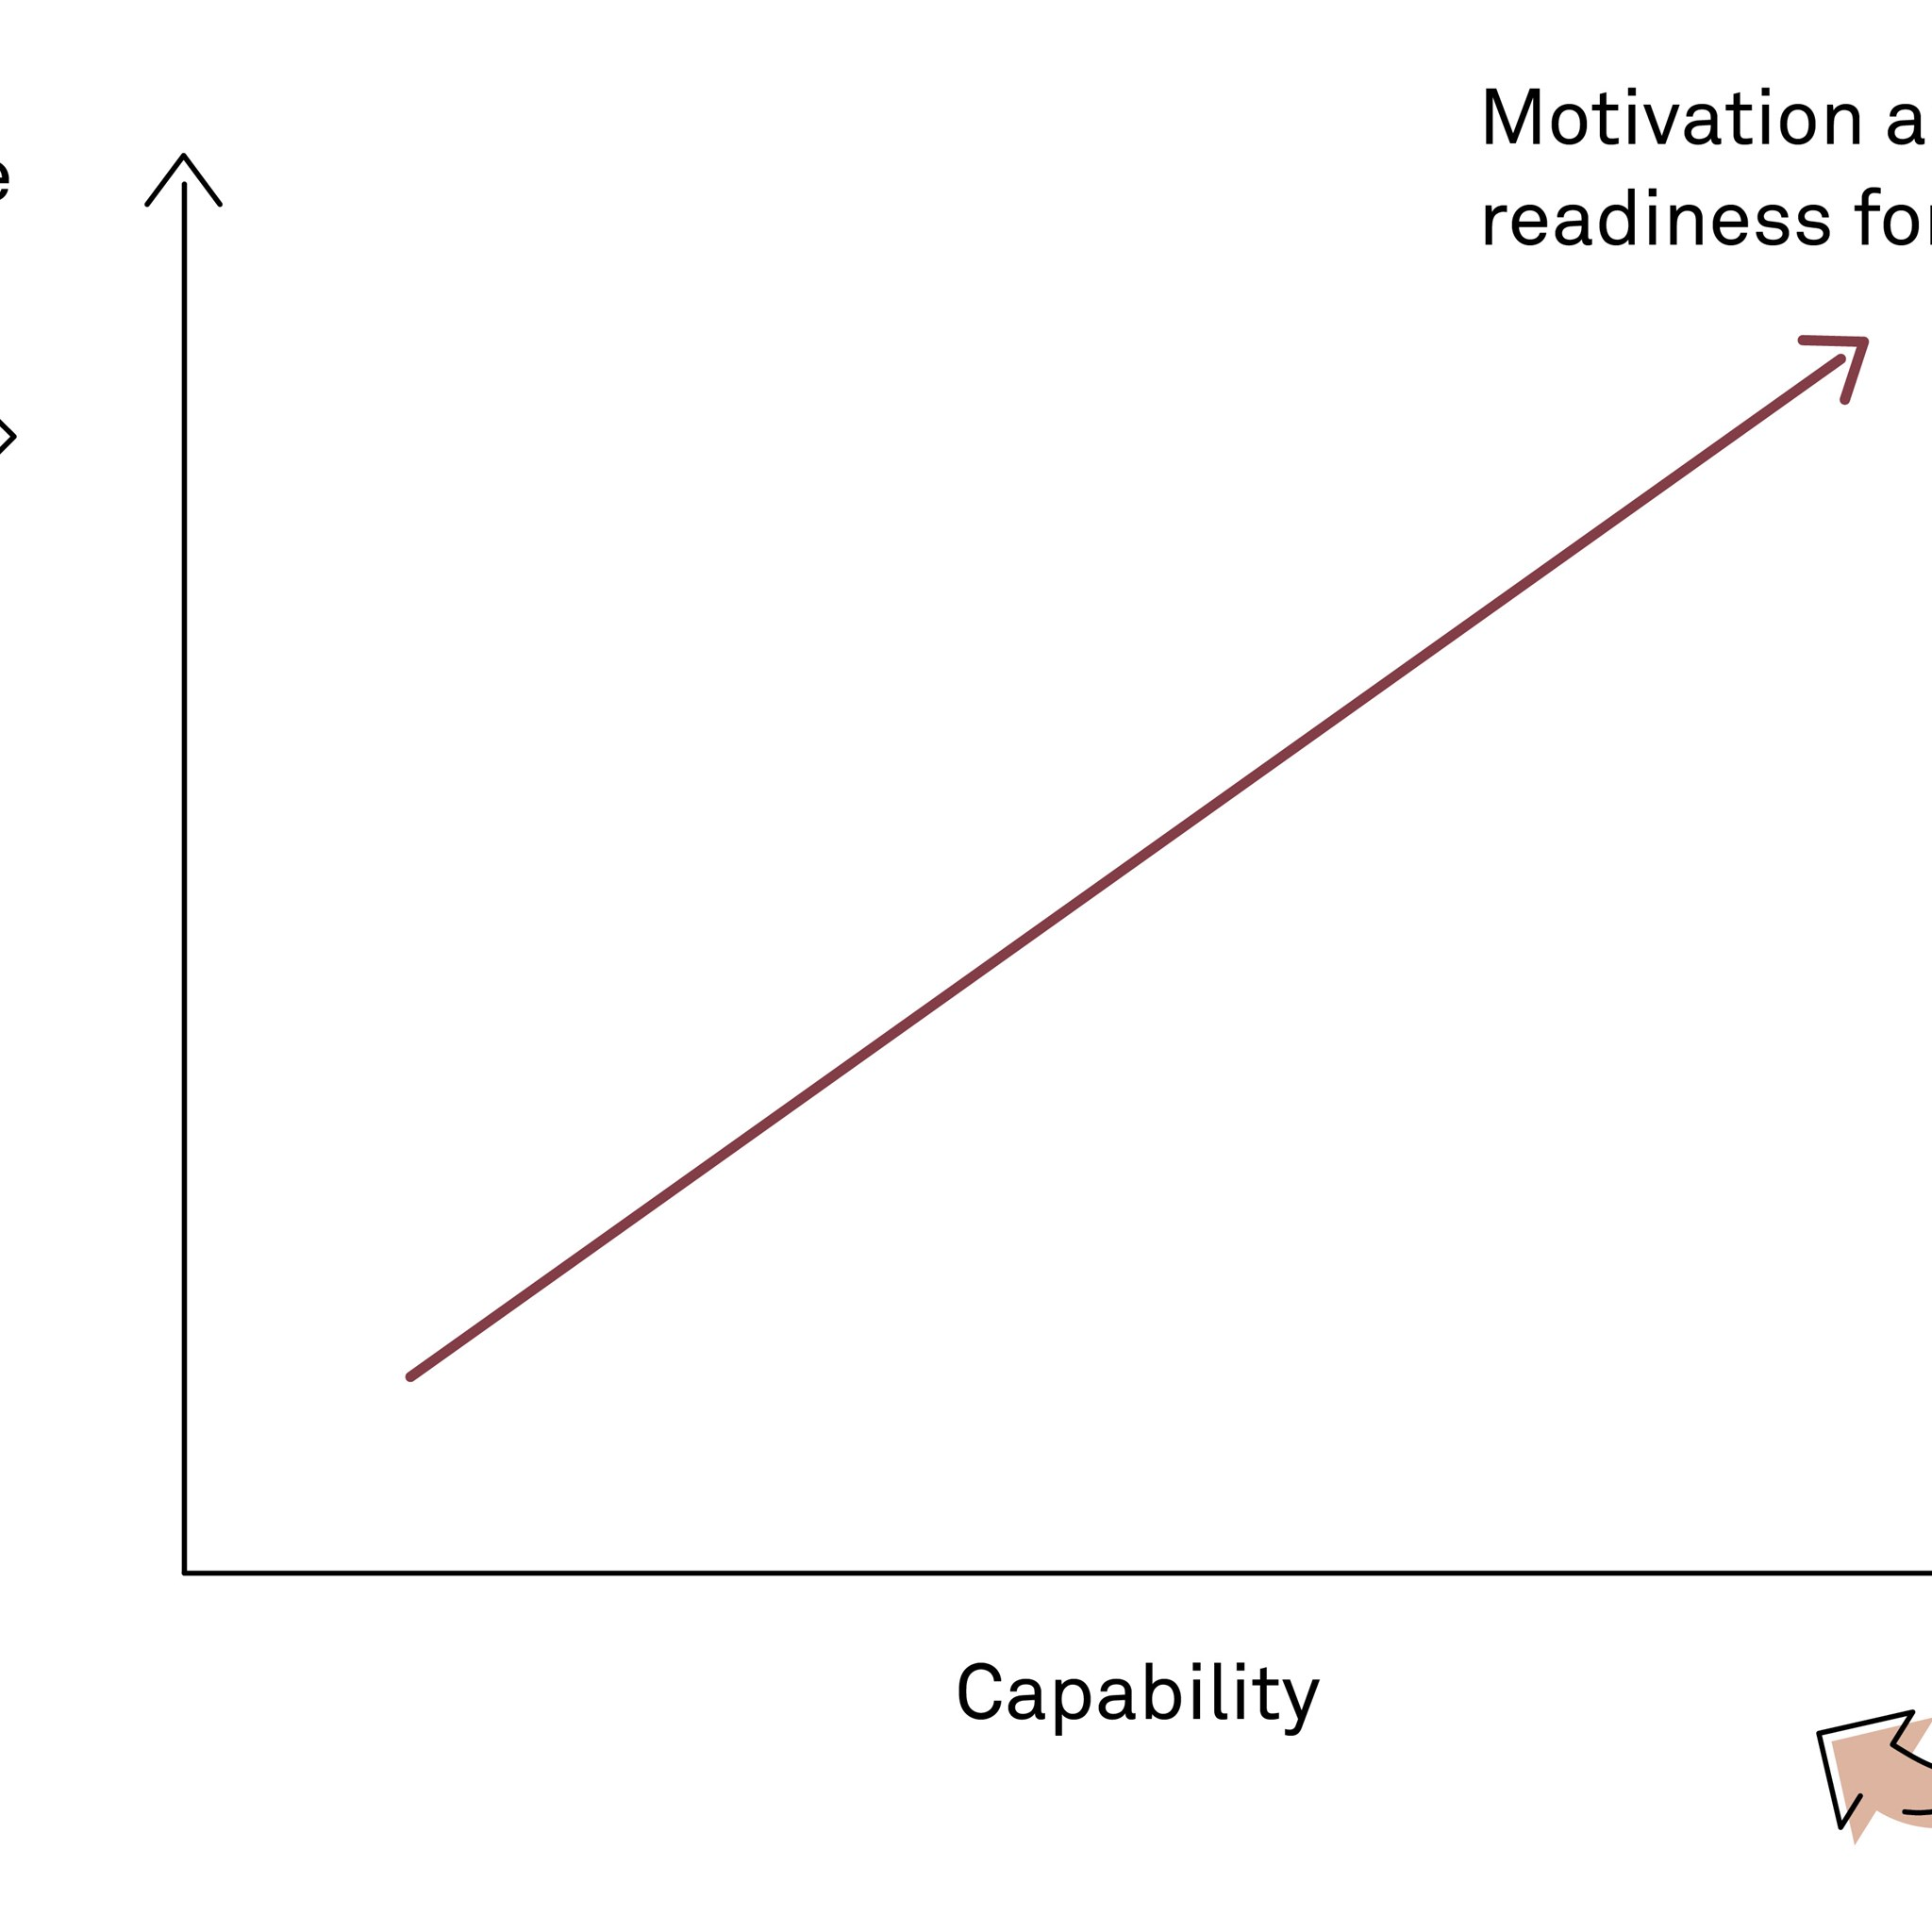 Motivation and readiness for change require a sense of purpose and capability.